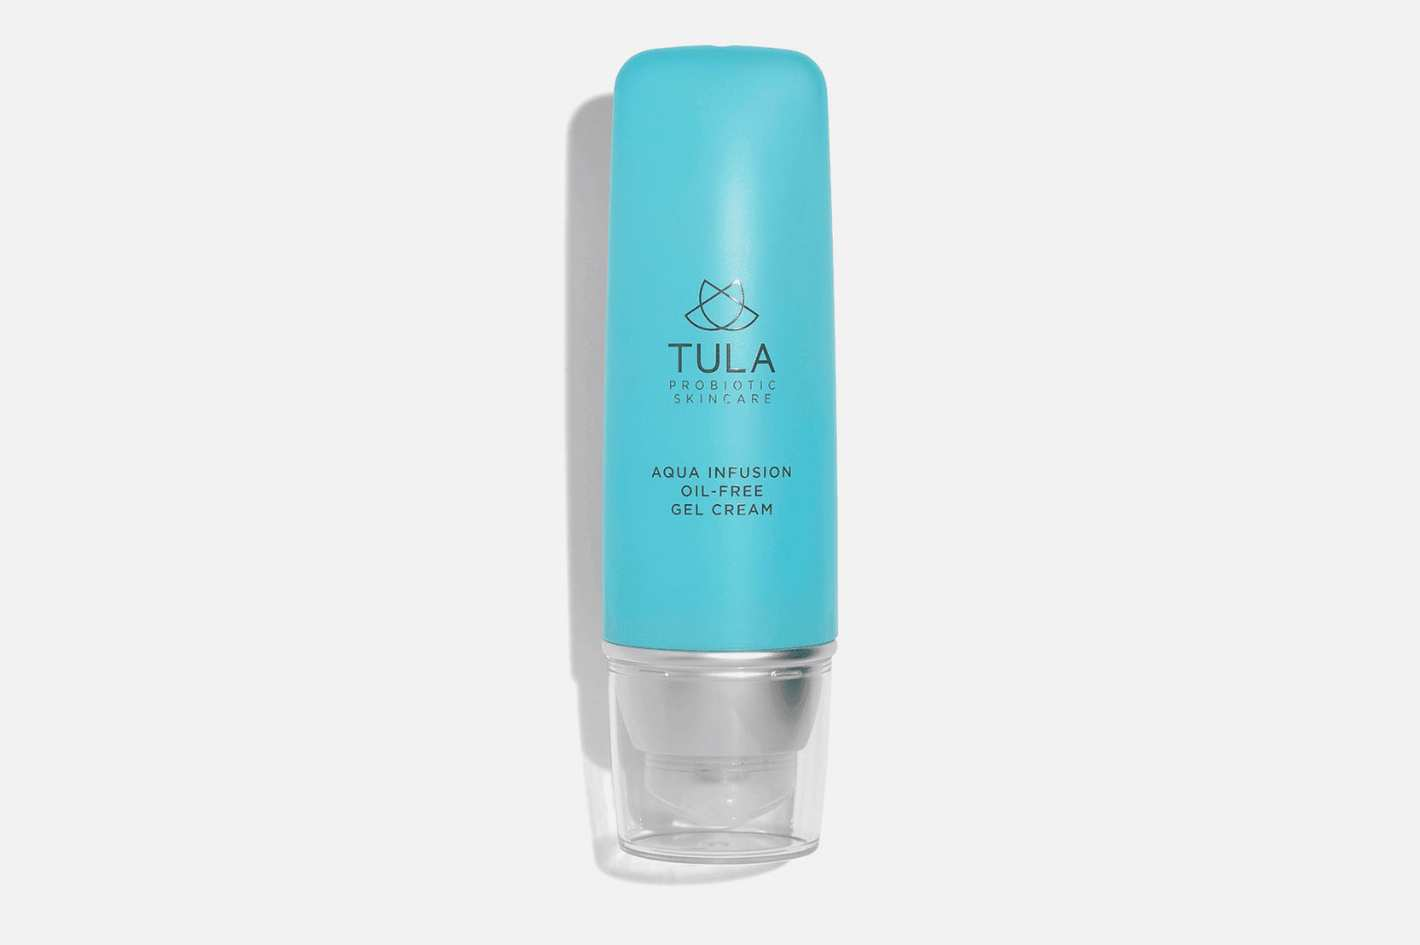 Tula Aqua Infusion Oil-Free Gel Cream